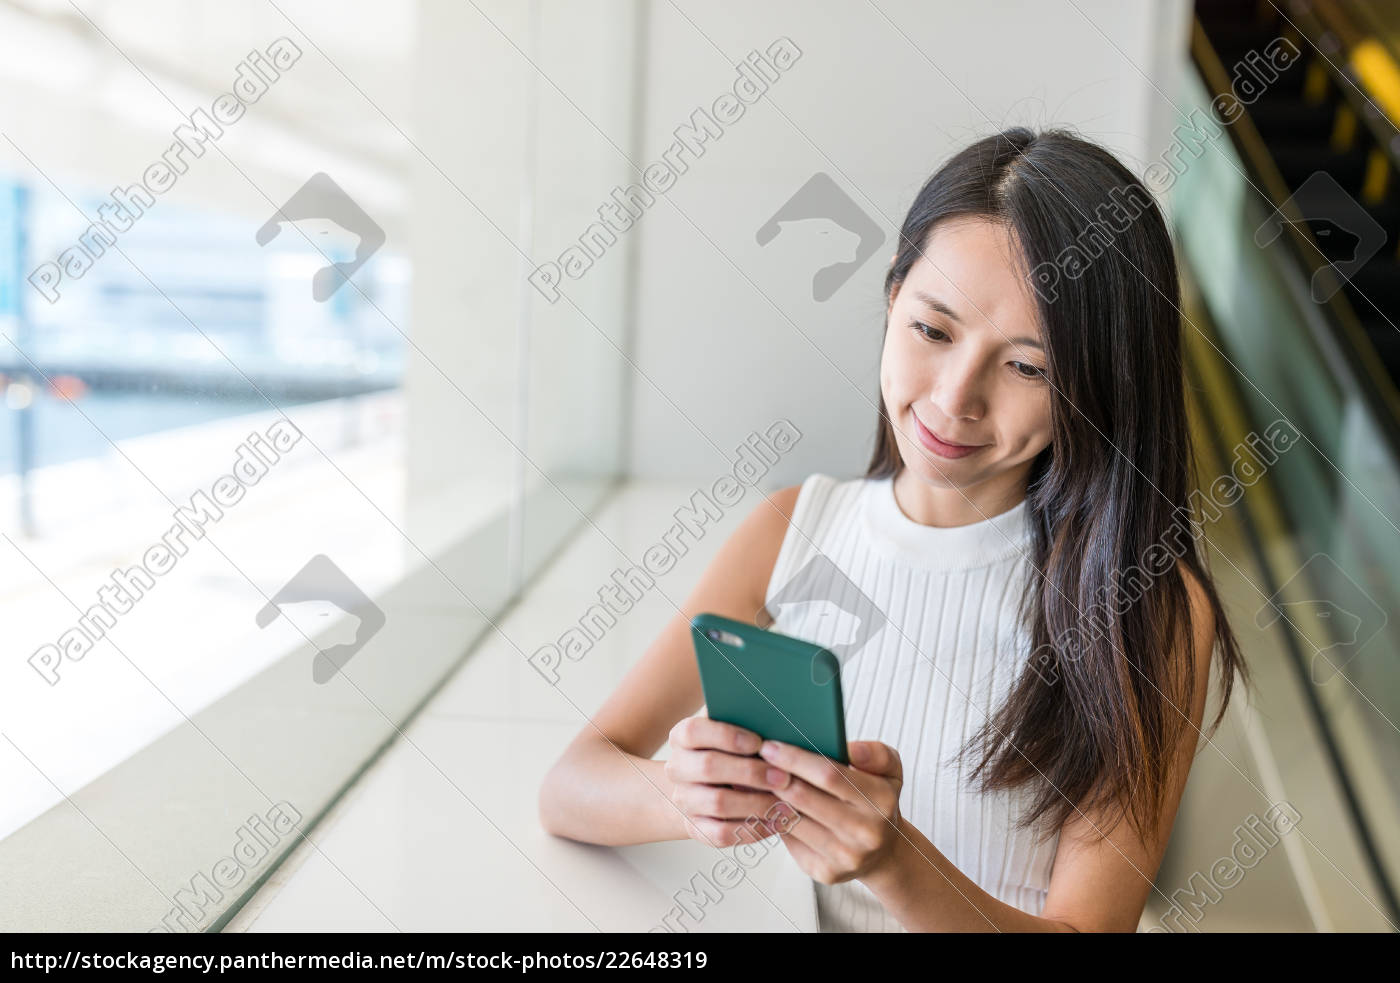 woman, use, of, mobile, phone - 22648319